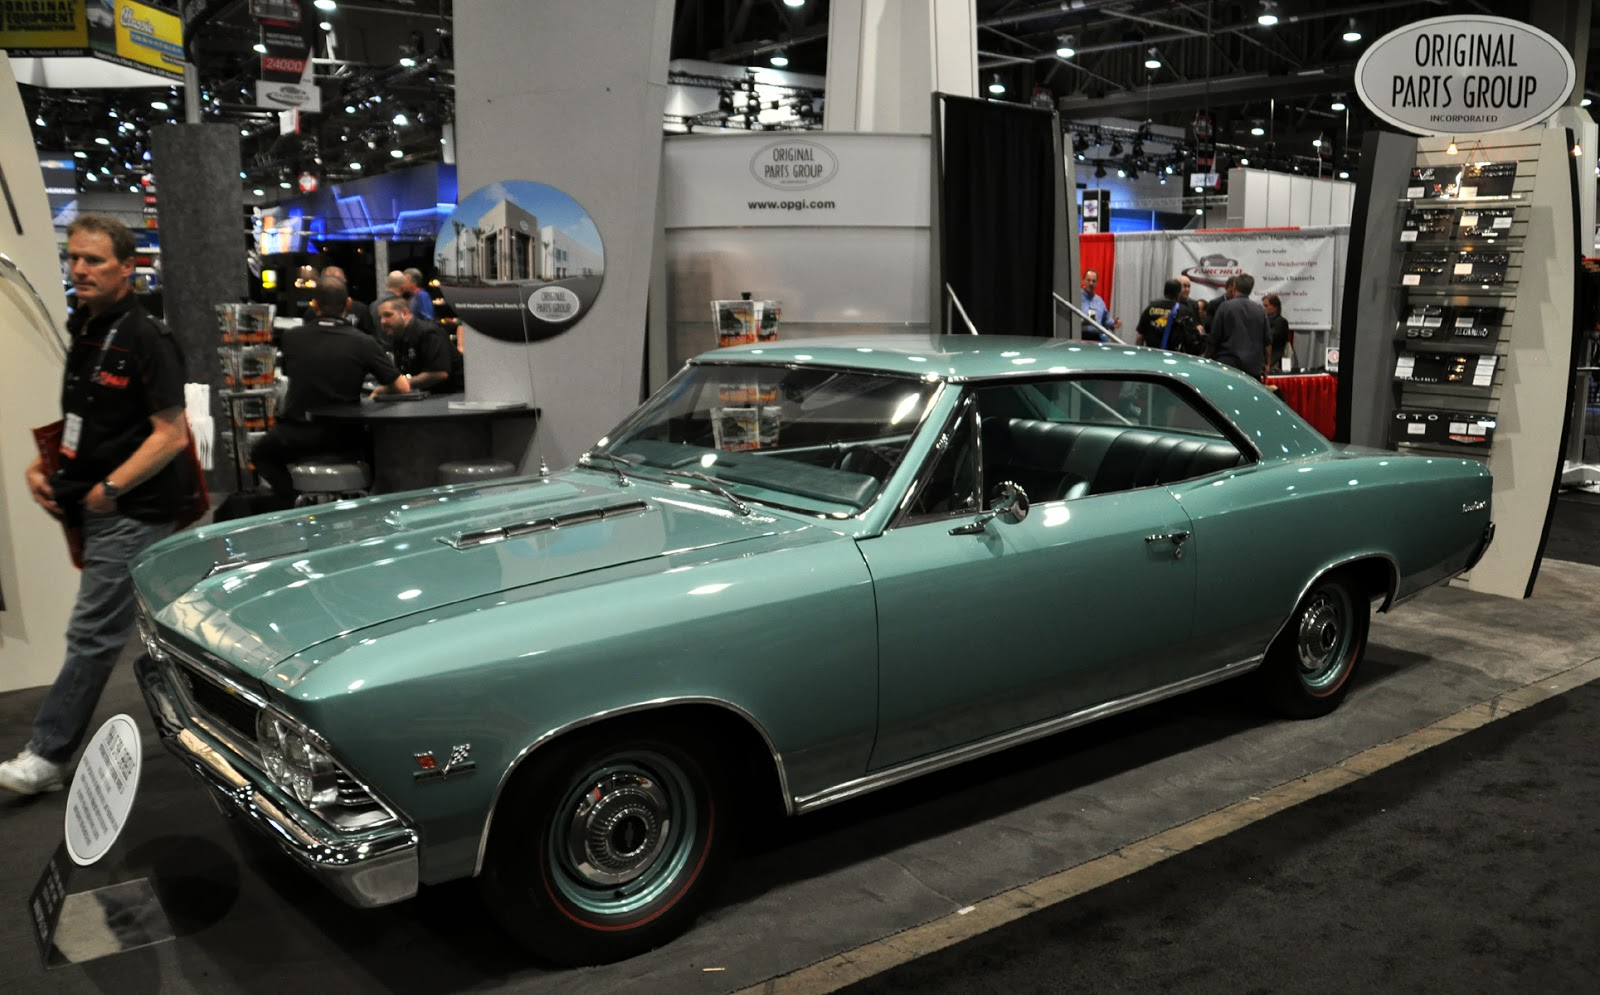 Just A Car Guy: Original Parts Group had this sweet 66 Chevelle in